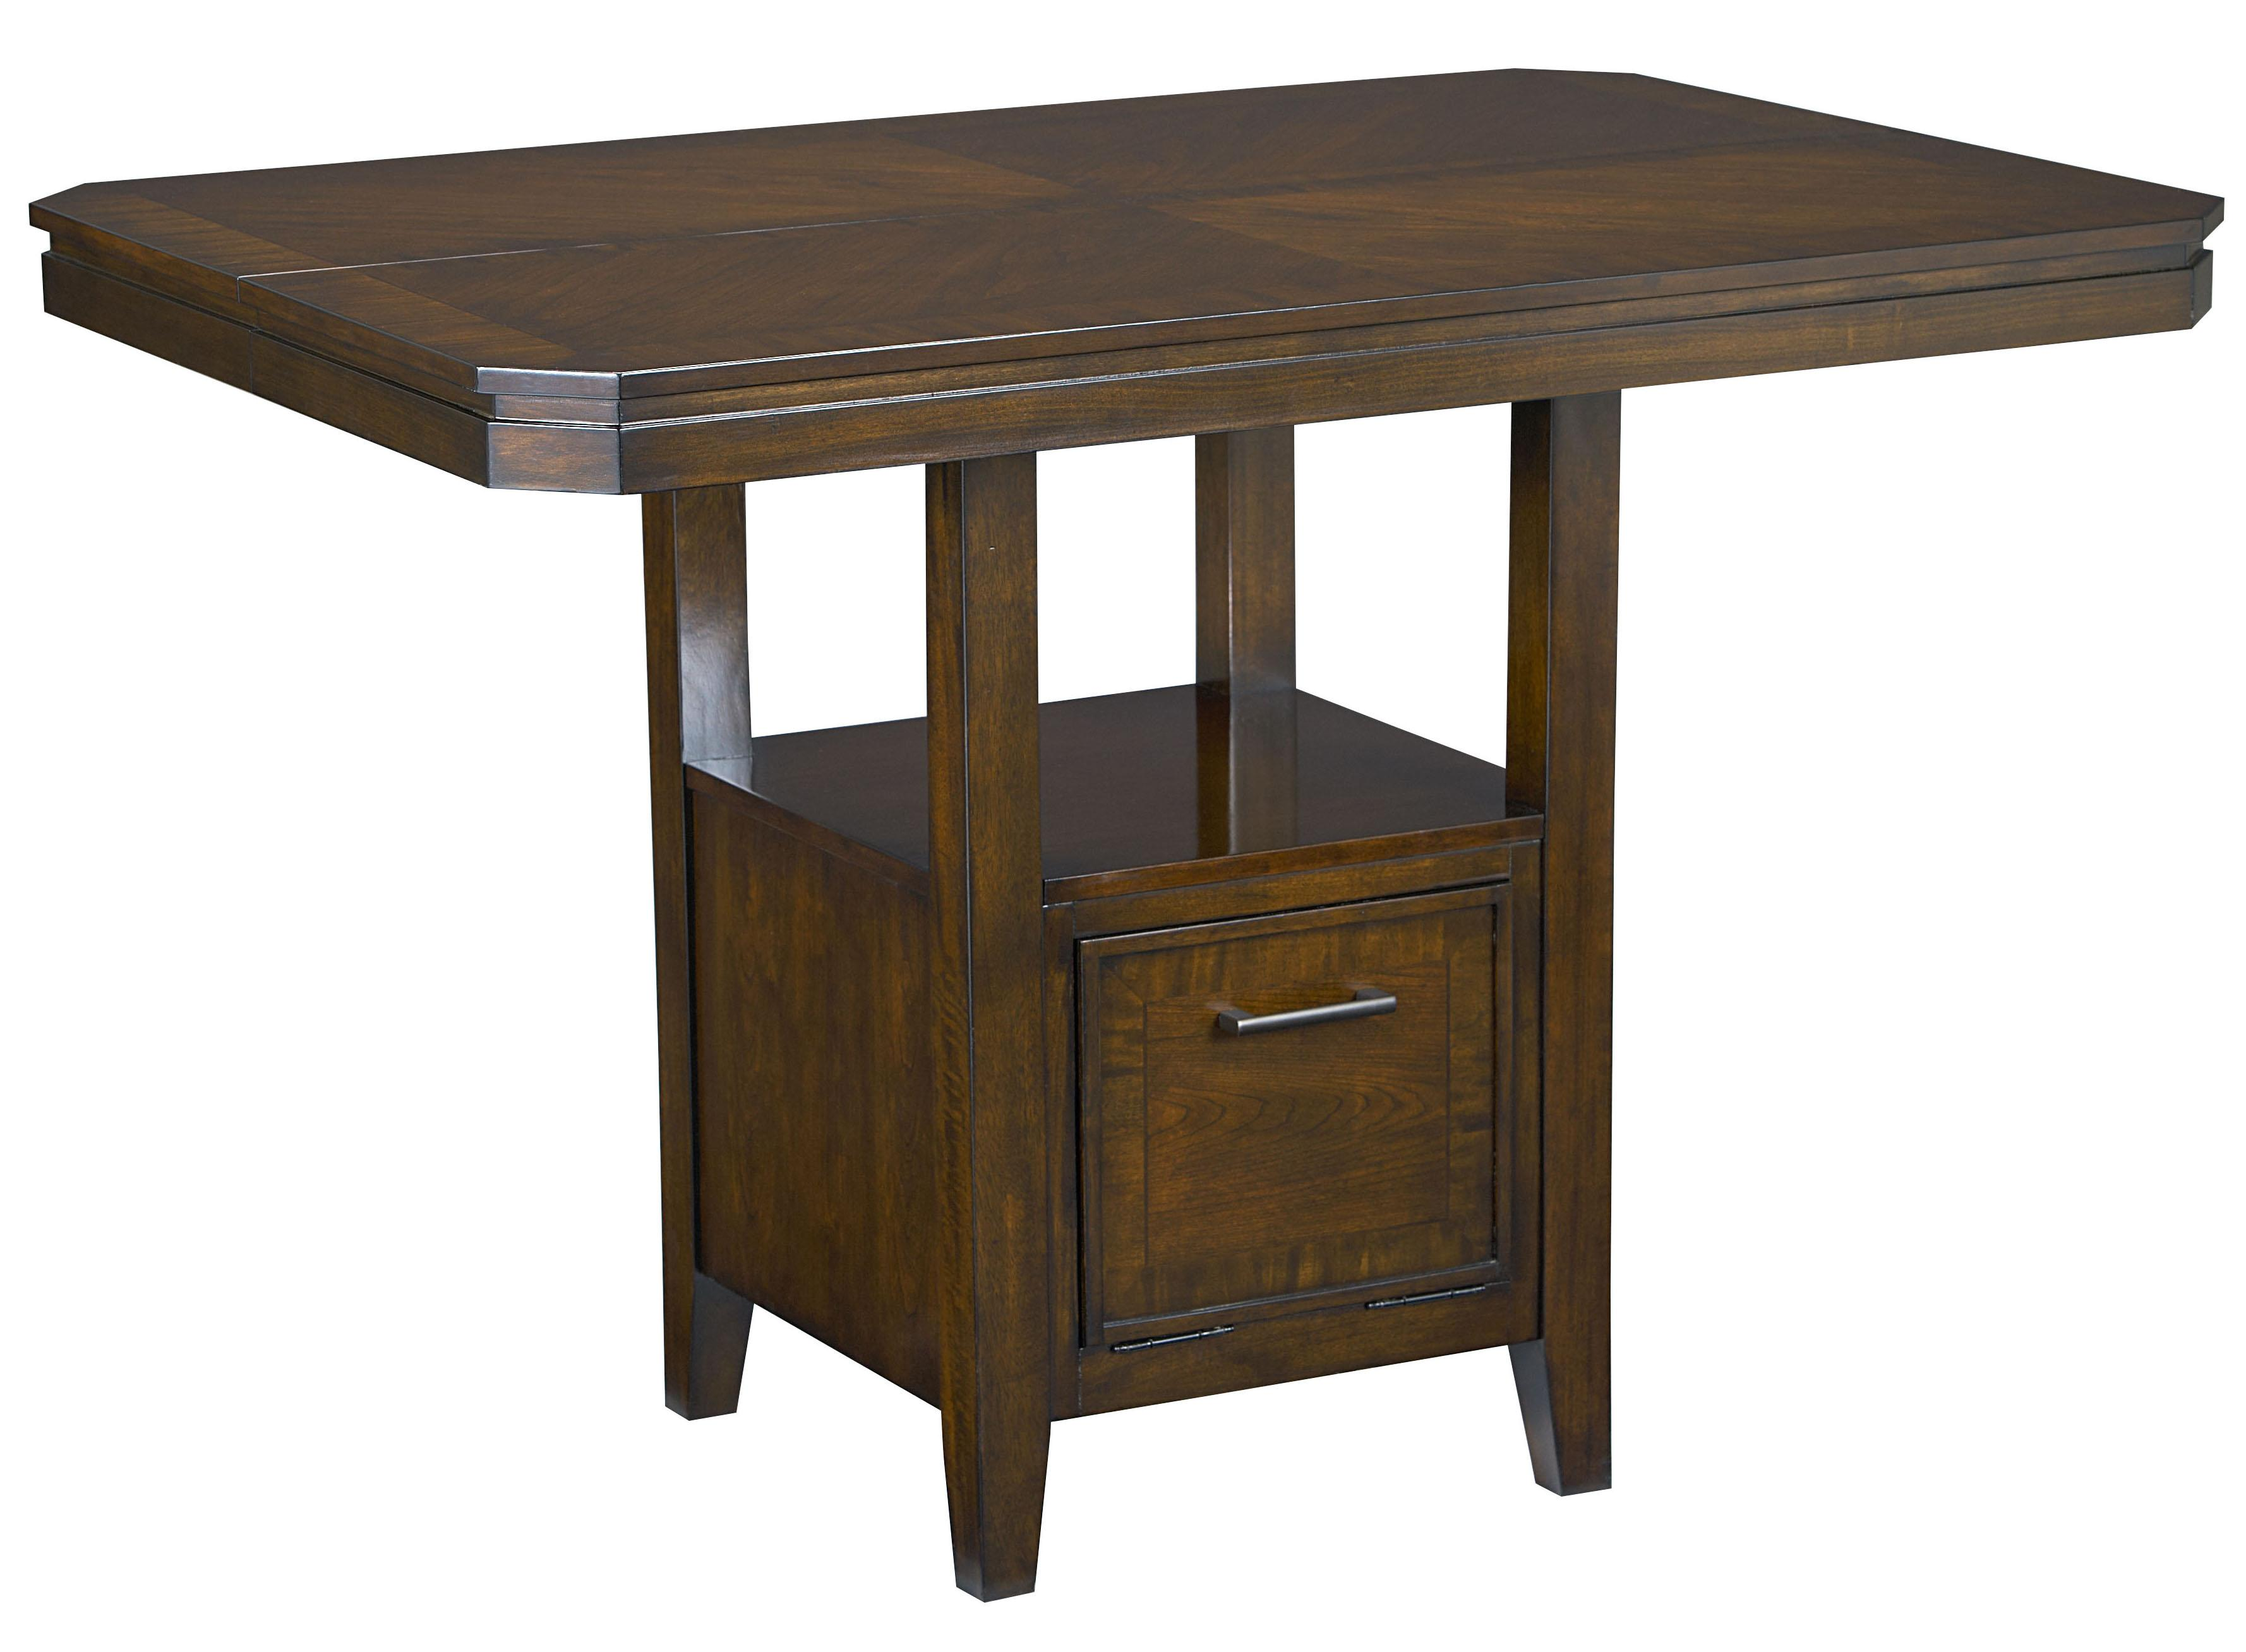 standard furniture avion counter height table with pedestal base standard furniture avion counter height table item number 17836